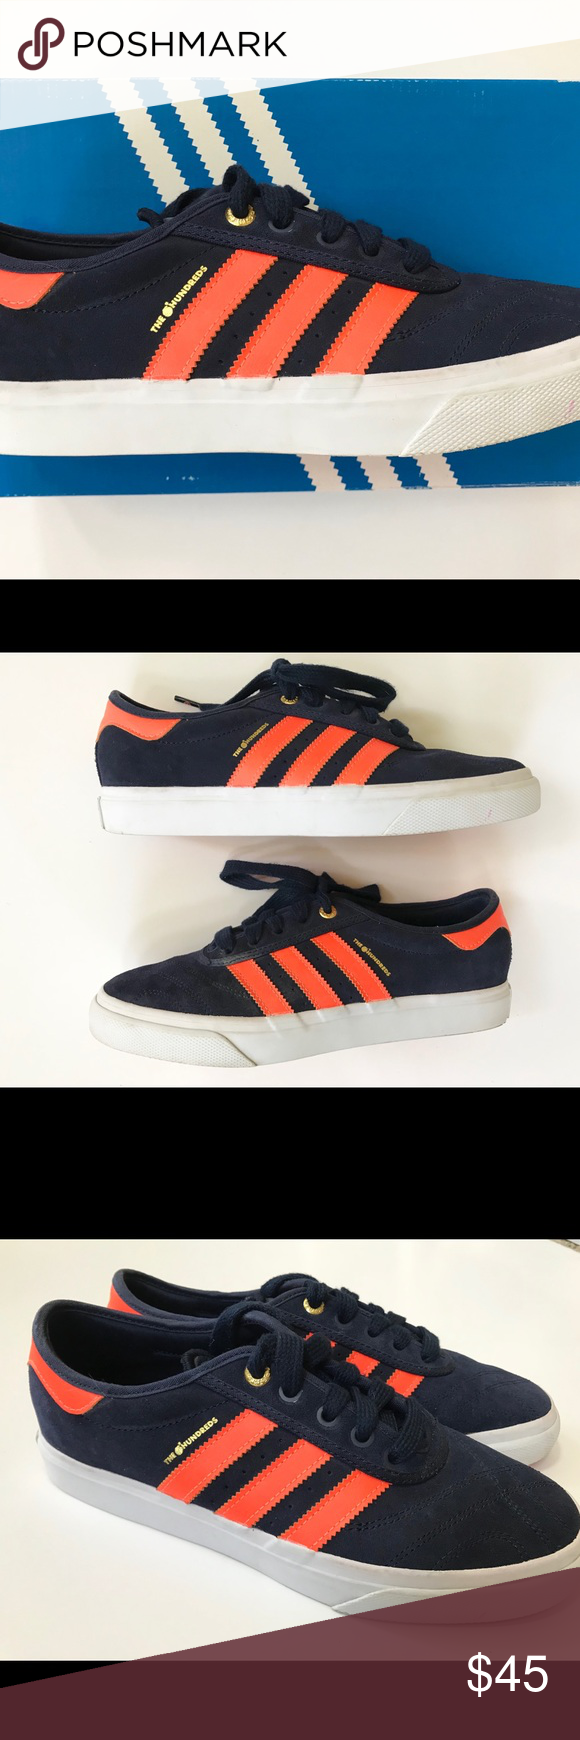 info for 249a3 6cff4 Adidas Adi-ease Hundreds Orange Crush Skate Shoes Adidas Adi-ease Hundreds  Skateboarding sneakers